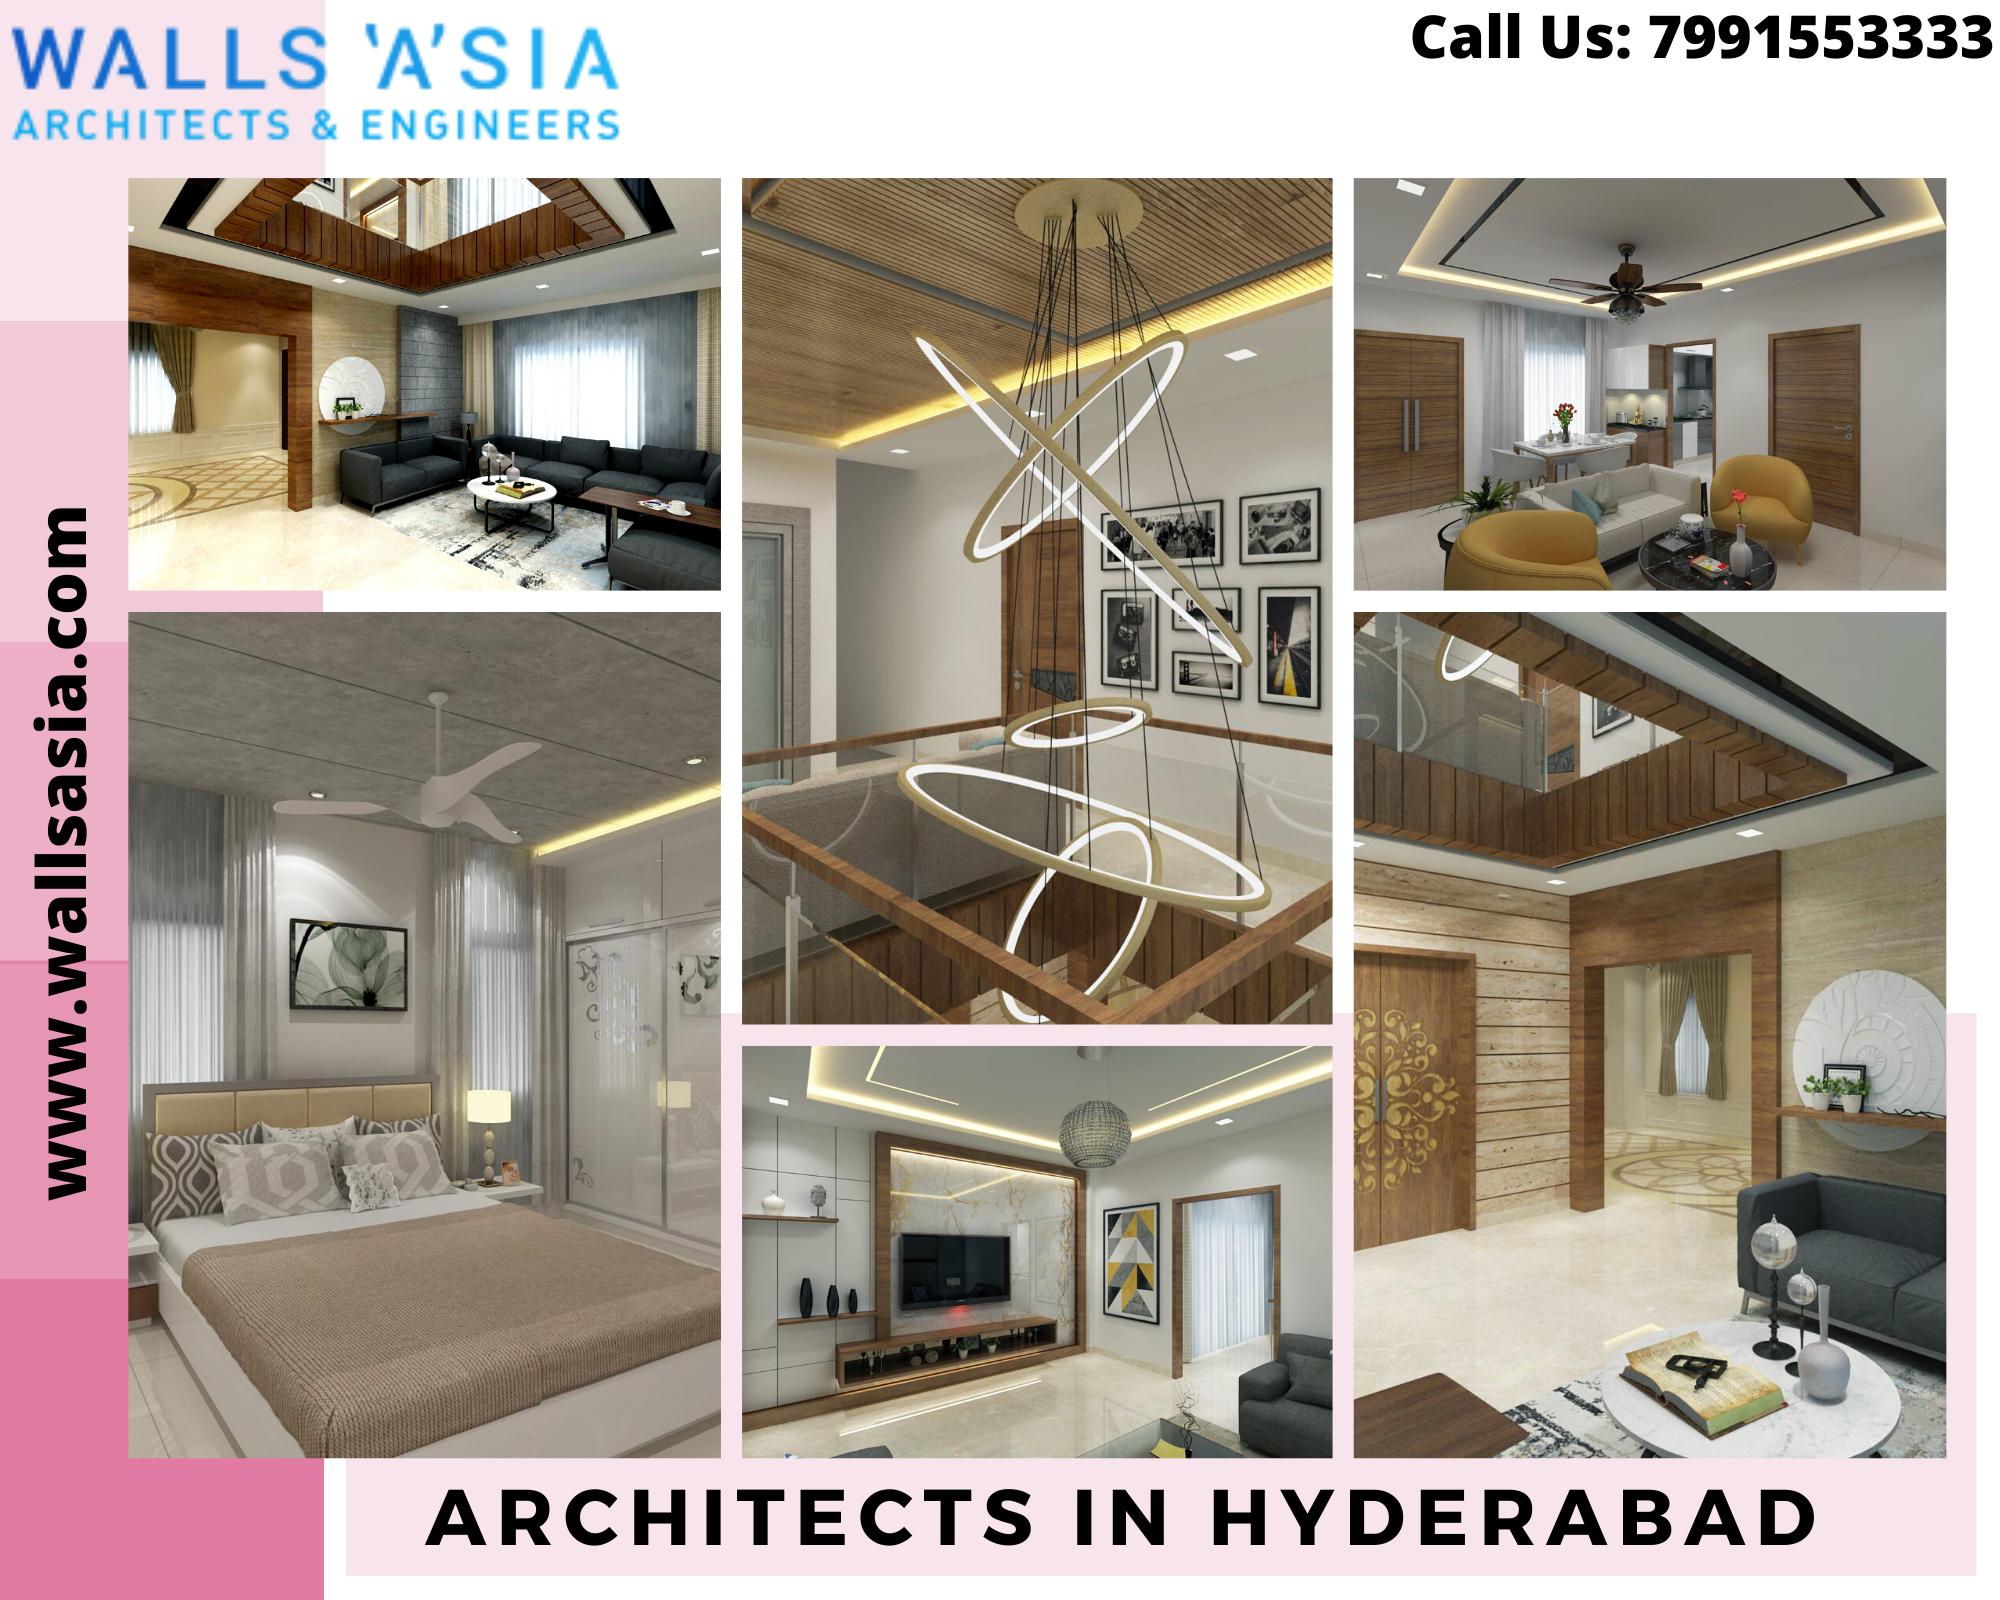 Architects In Hyderabad | Walls Asia in 2020 | Interior ...